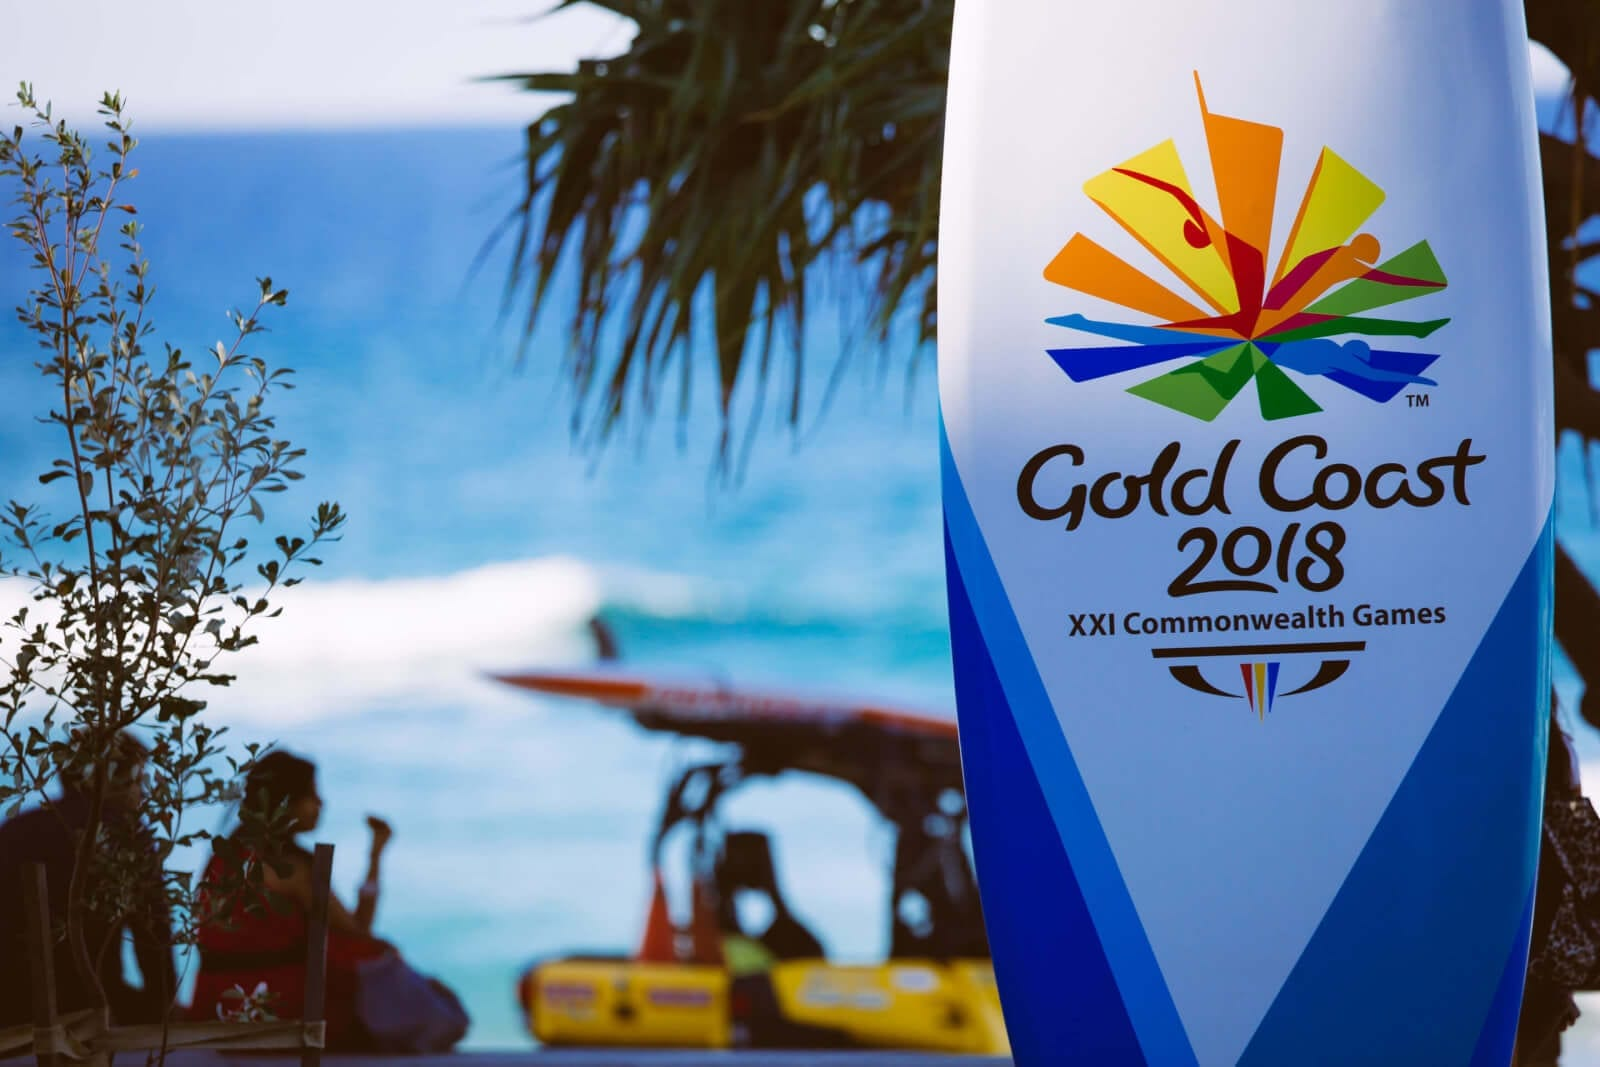 Commonwealth Games Gold Coast 2018